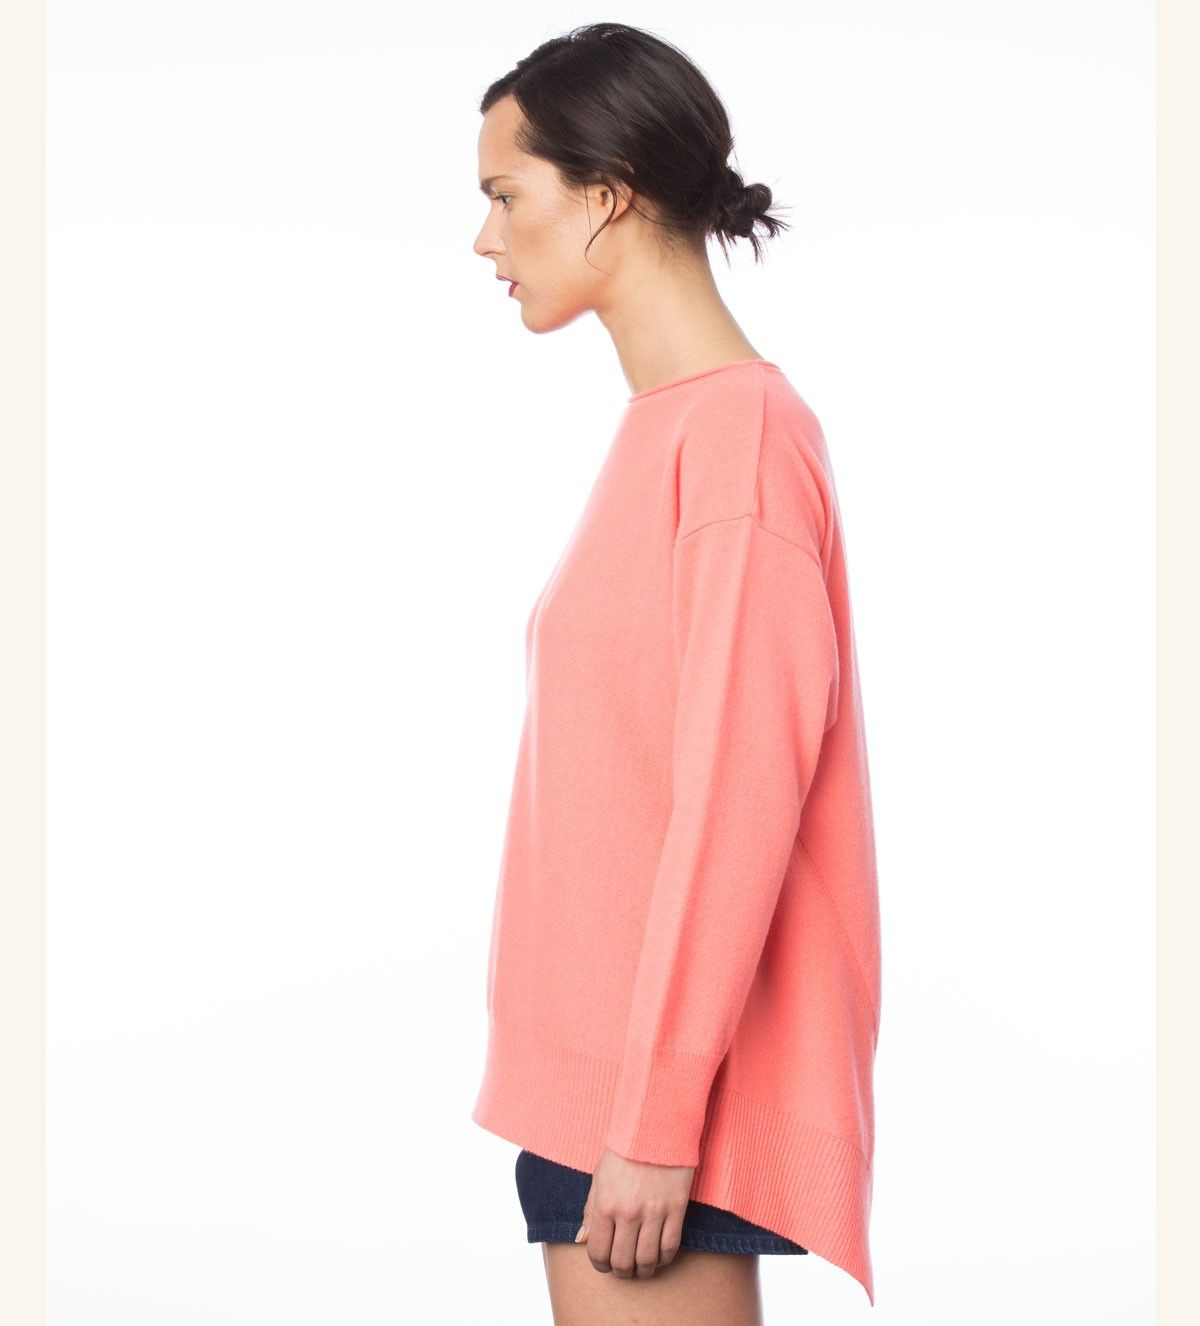 Cashmere sweater AMOR colour marker pink from MURIÉE.com - SHOP ...